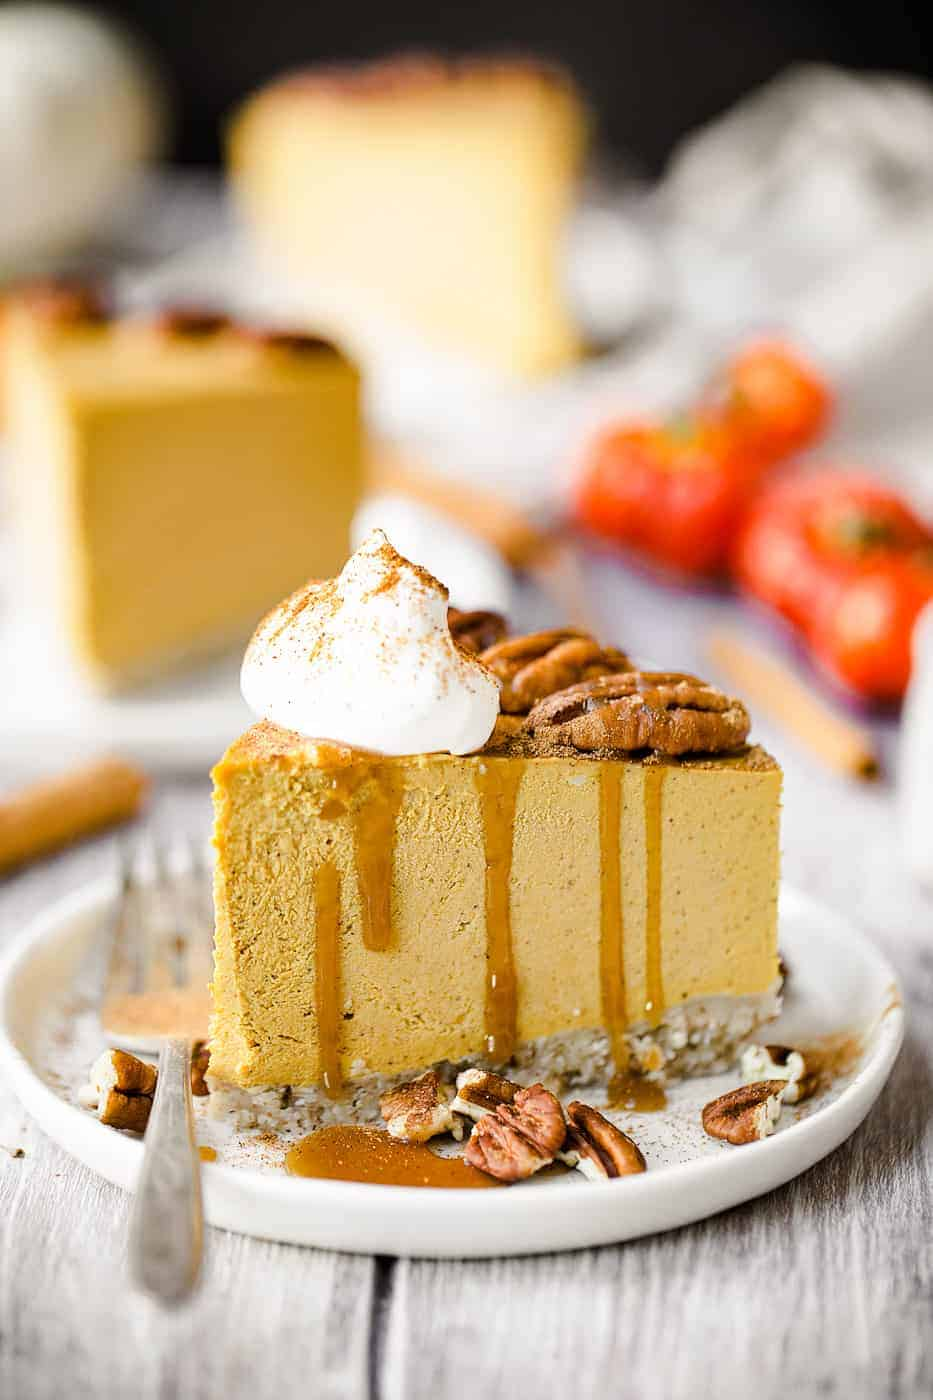 a slice of pumpkin cheesecake on a white plate with pecans, caramel sauce and whipped cream